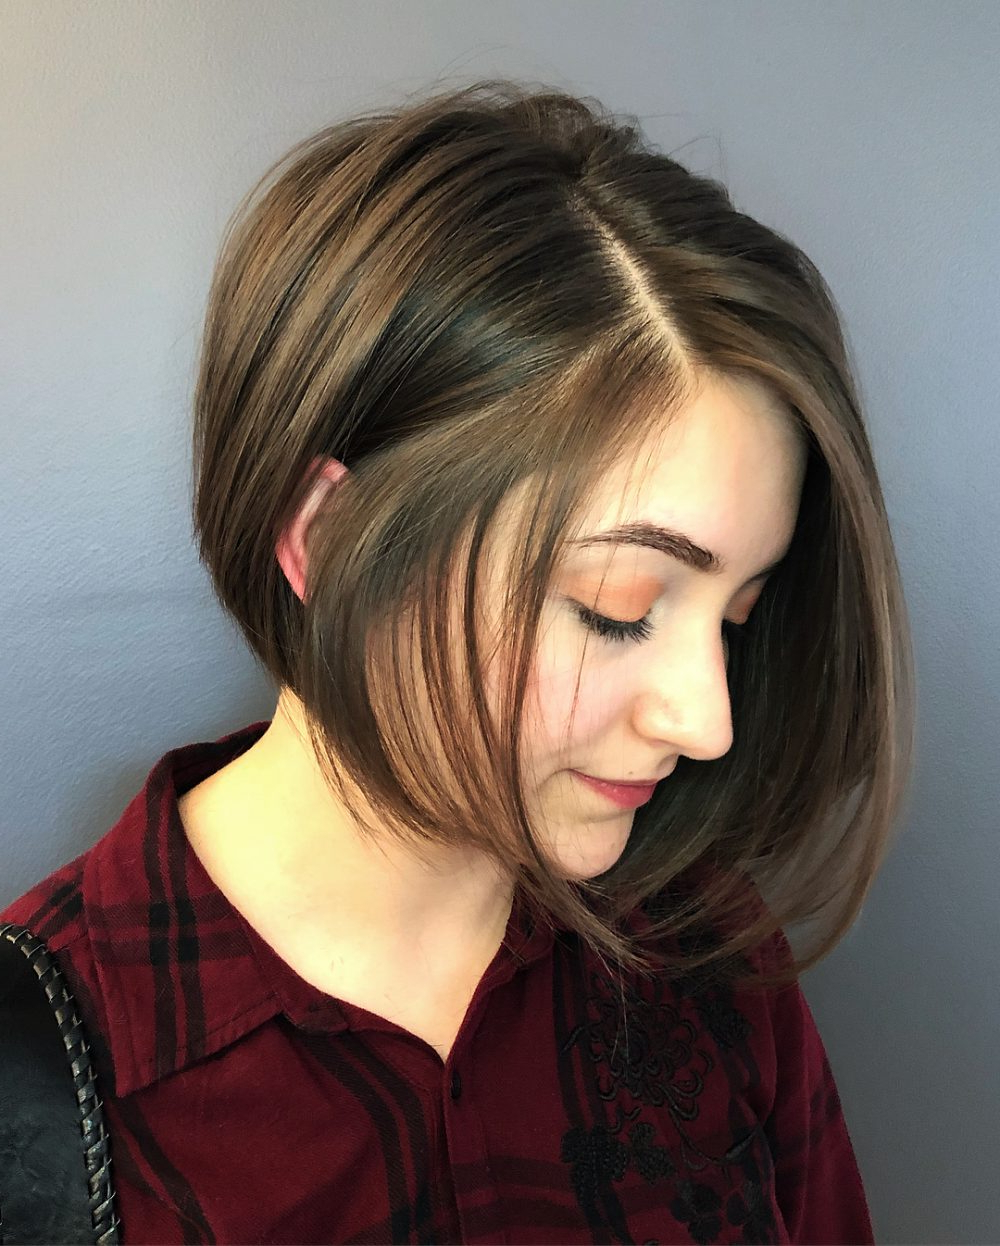 33 Flattering Short Hairstyles For Round Faces In 2018 For Short Haircuts For Round Face Women (View 5 of 25)